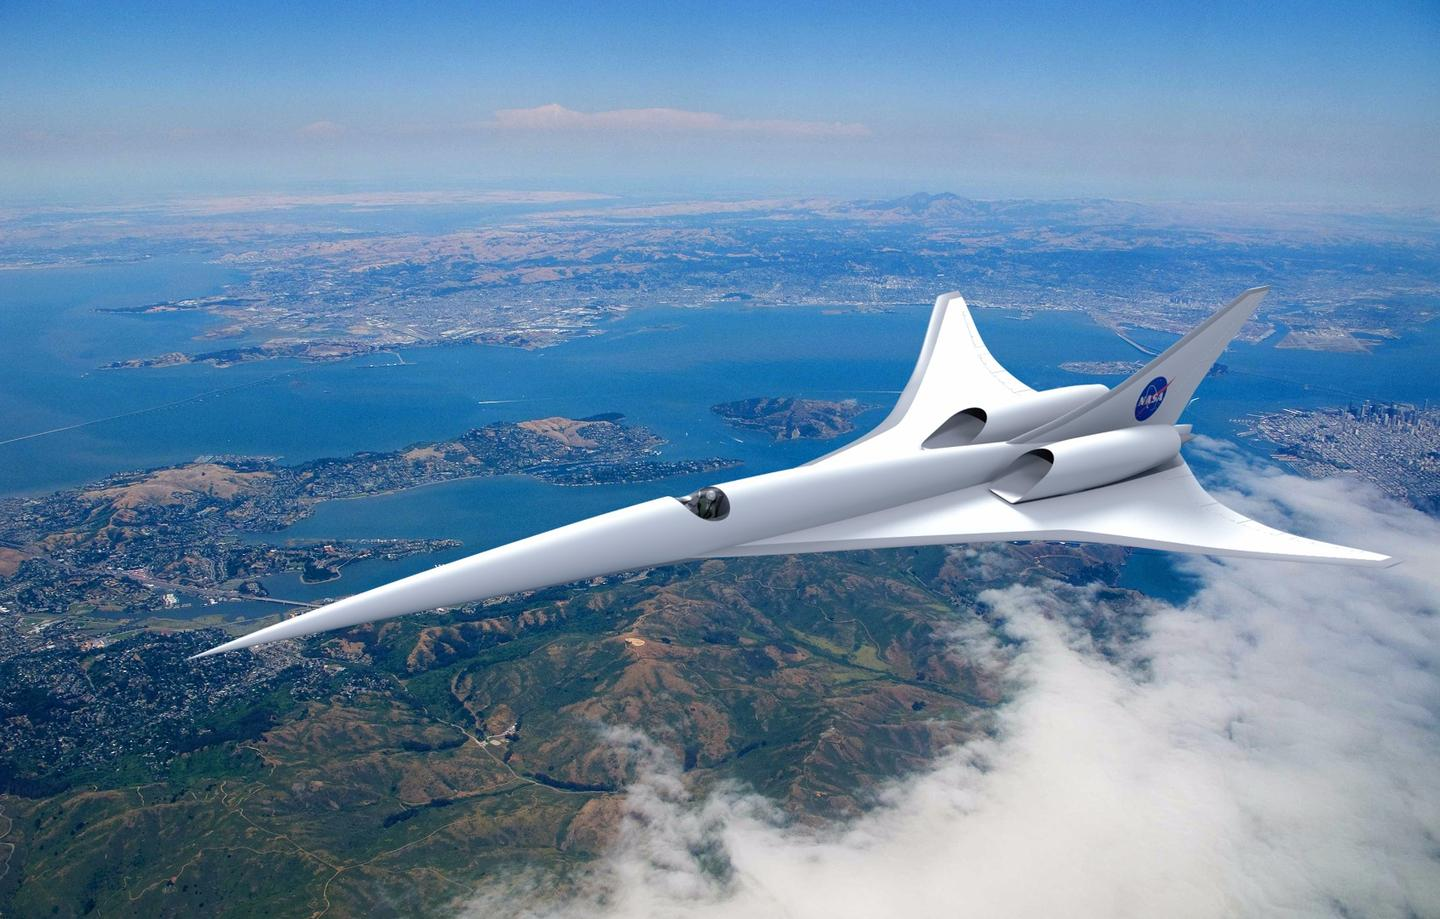 Artist's concept of a hypersonic aircraft